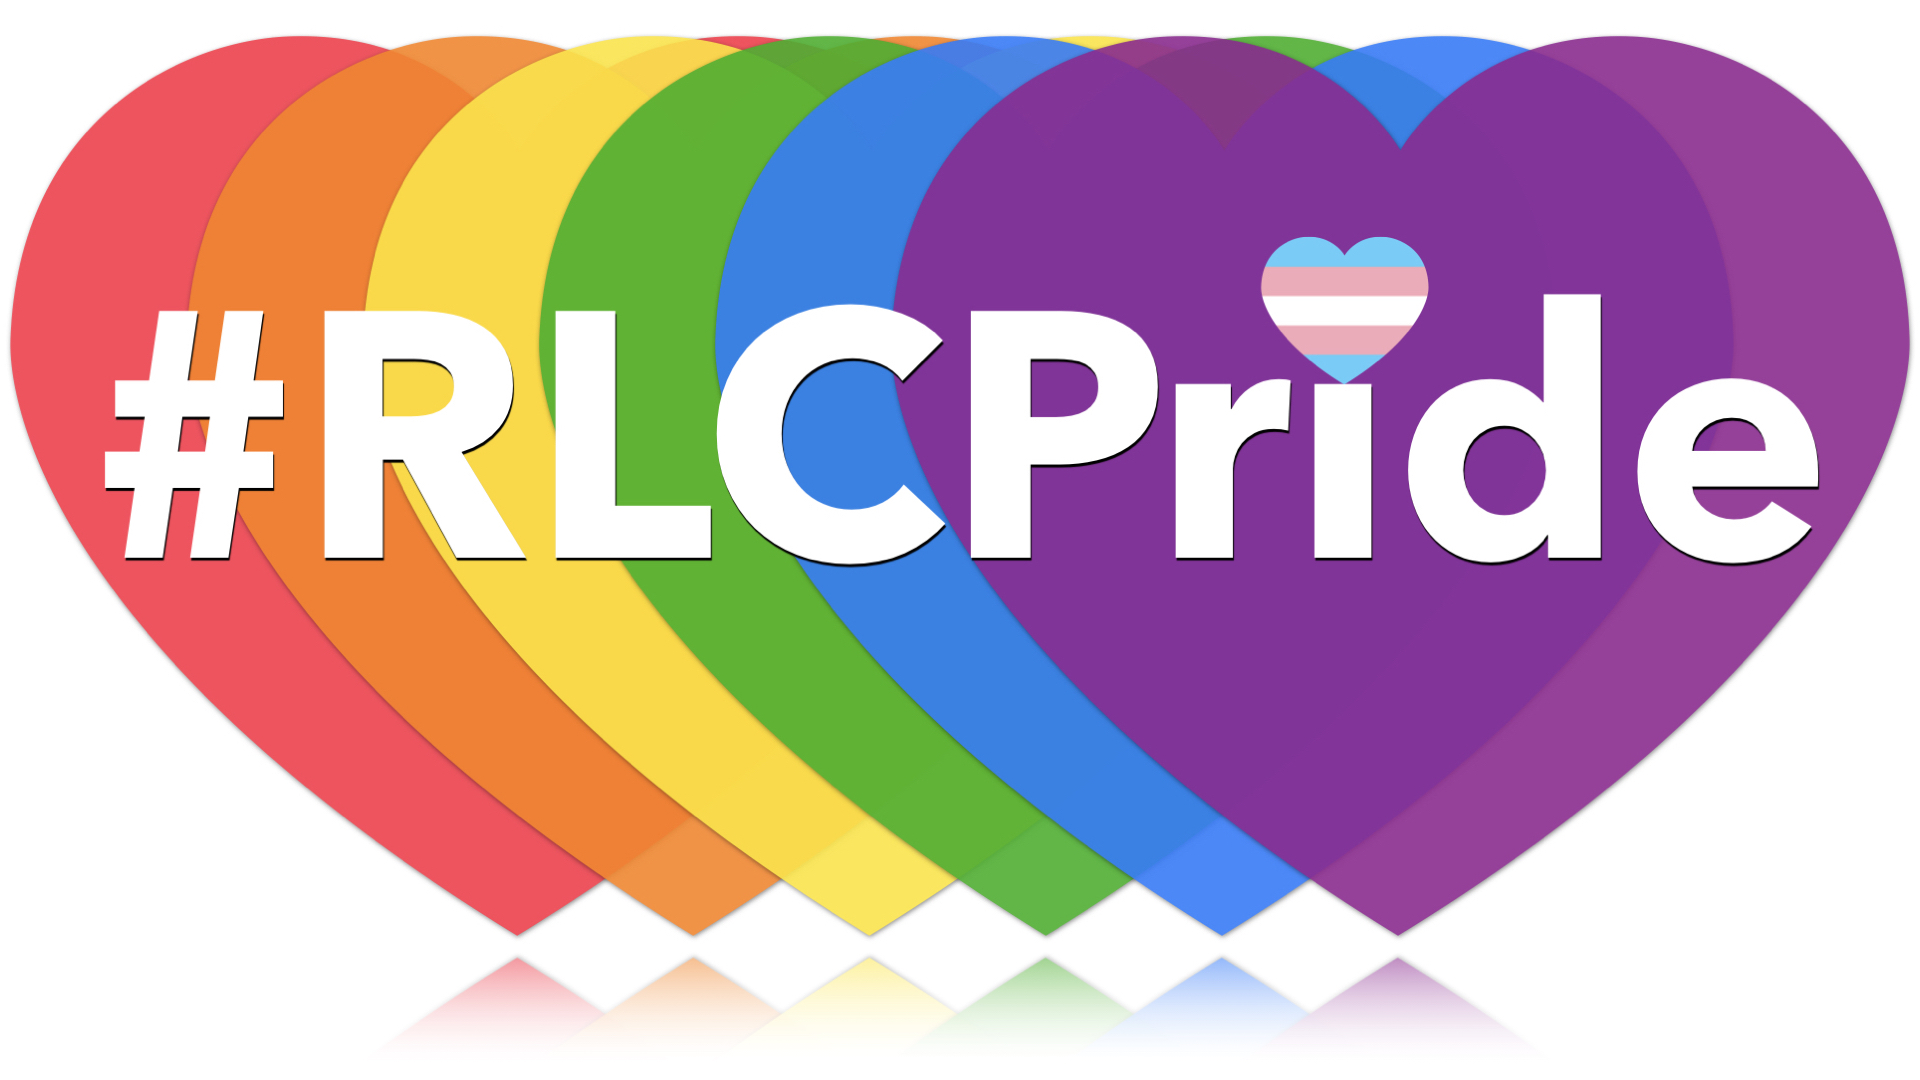 Share Reflections on Pride with #RLCPride